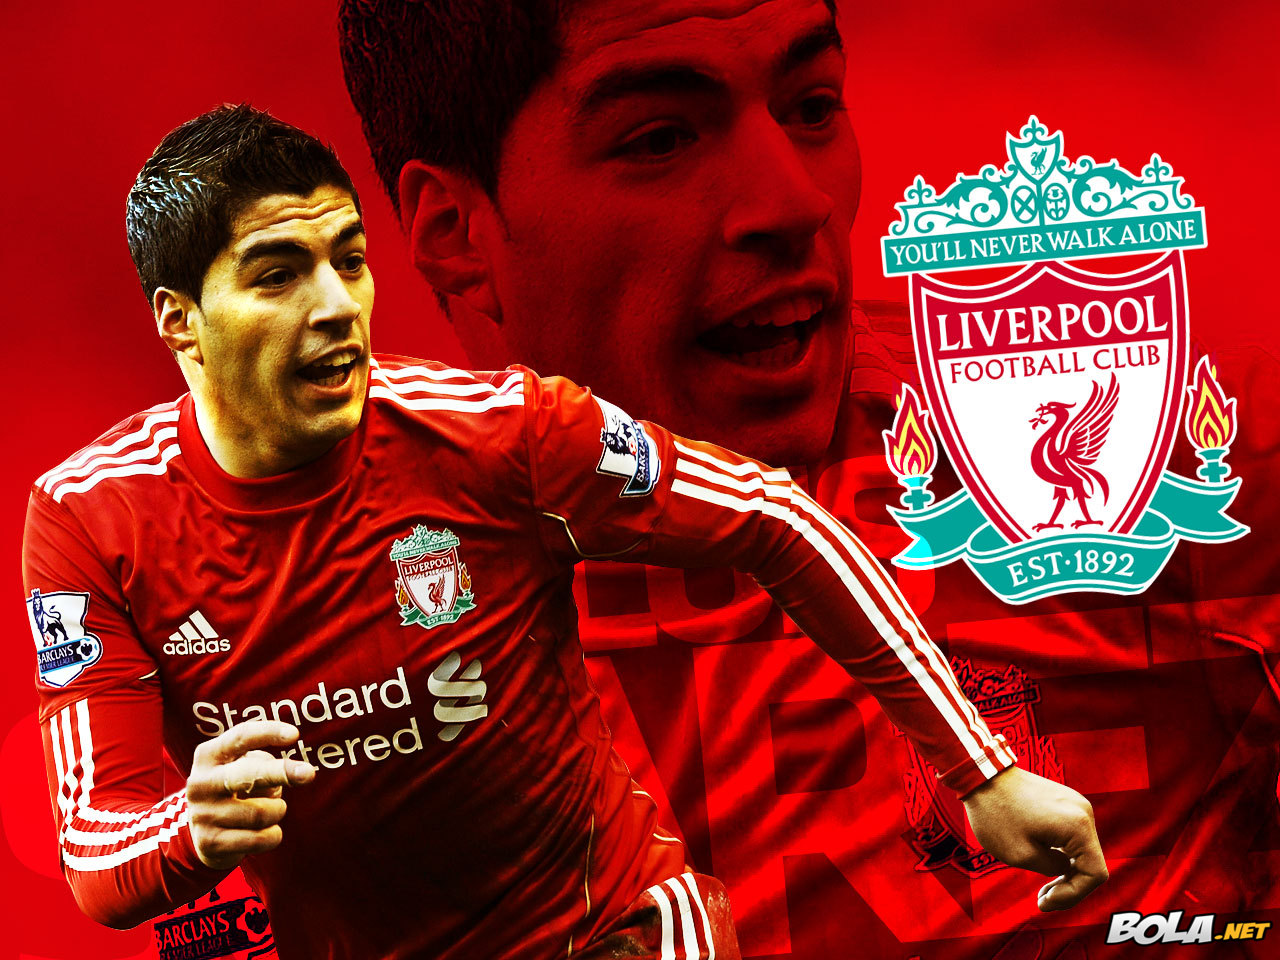 Luis alberto su rez d az liverpool soccer wallpapers - Suarez liverpool wallpaper ...